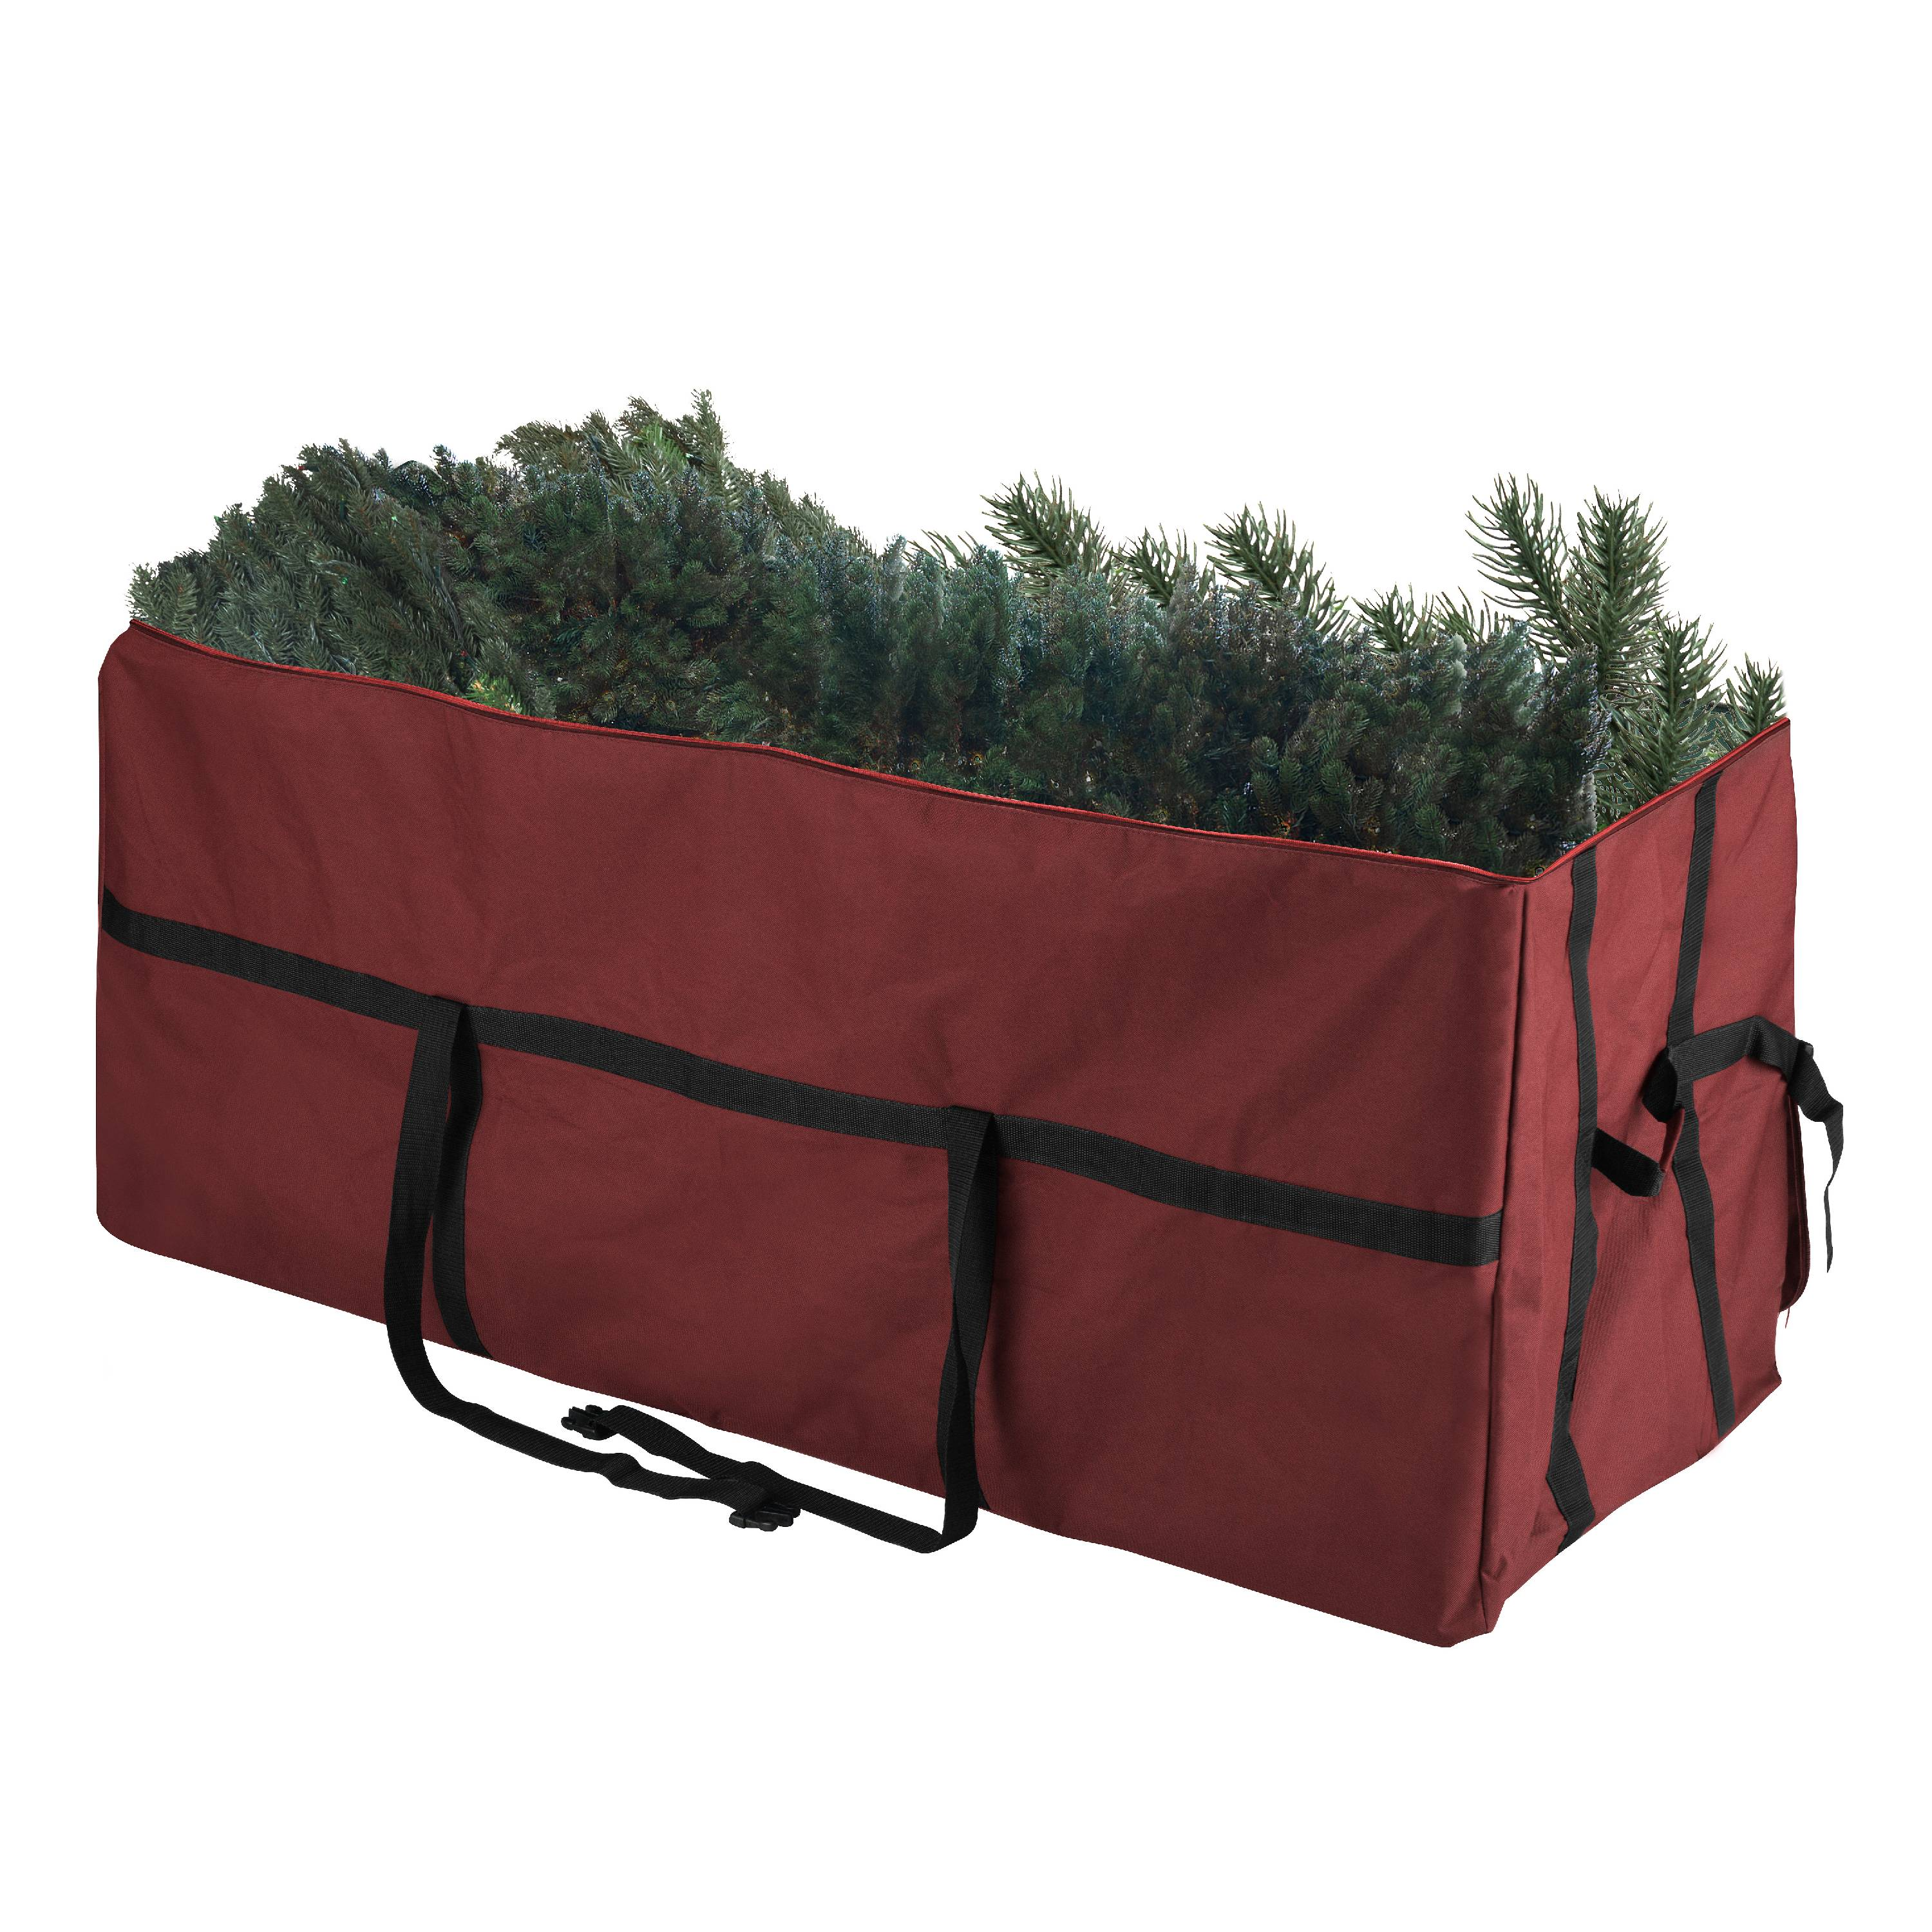 Elf Stor Heavy Duty Red Canvas Christmas Tree Storage Bag Large For 7.5 ft Tree  sc 1 st  Walmart & Christmas Tree Bags